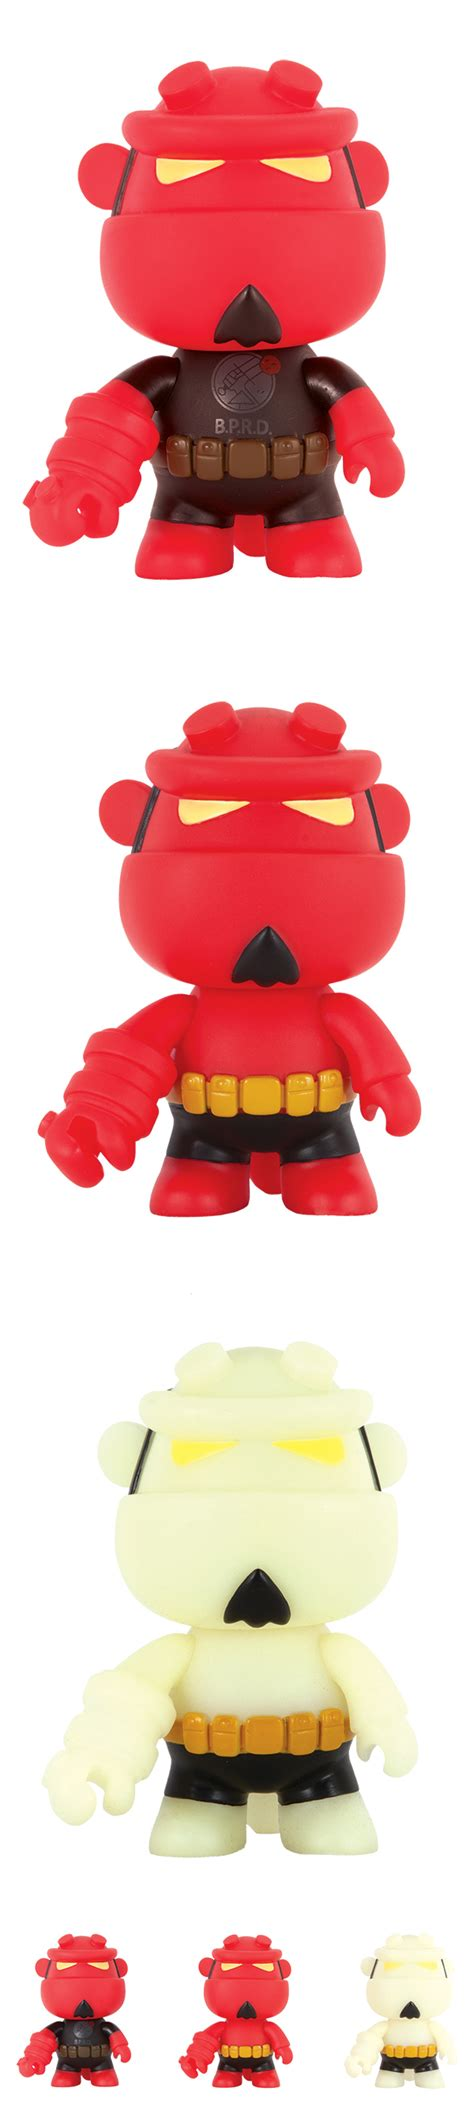 Hellboy Qee Collection Version Vinyl Figure figure insider 187 deluxe partners with